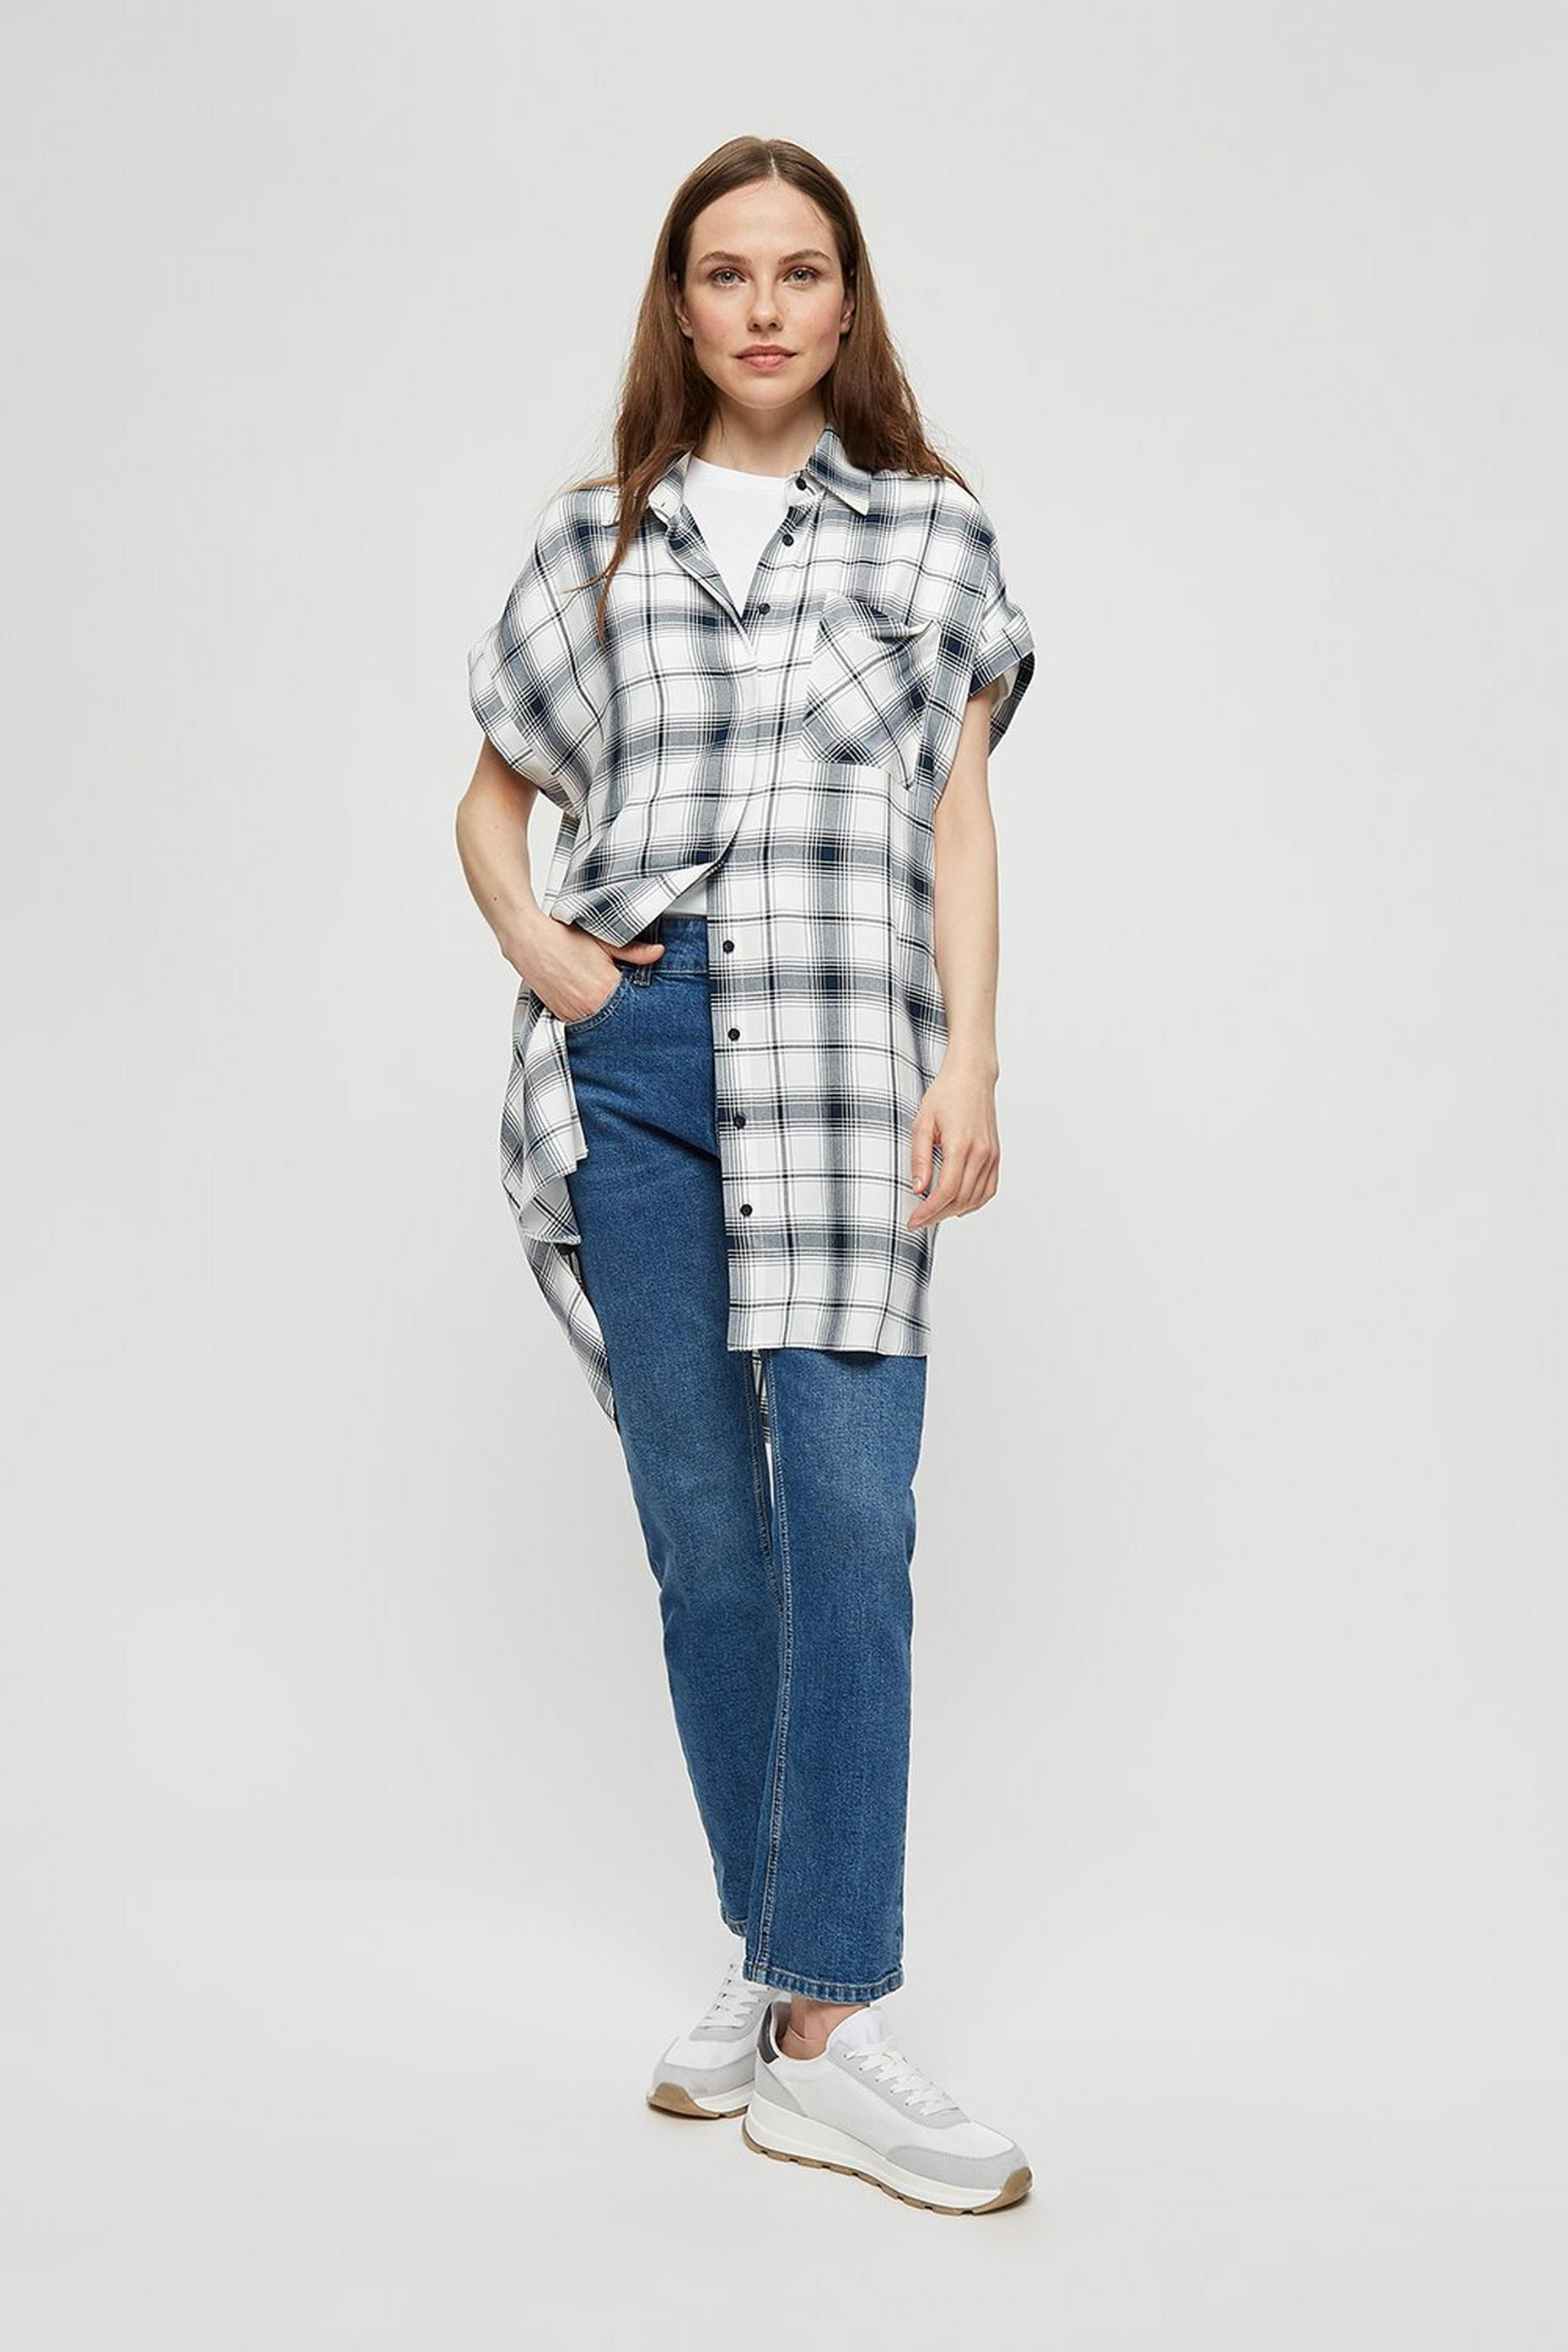 Black and White Gingham Long Line Shirt